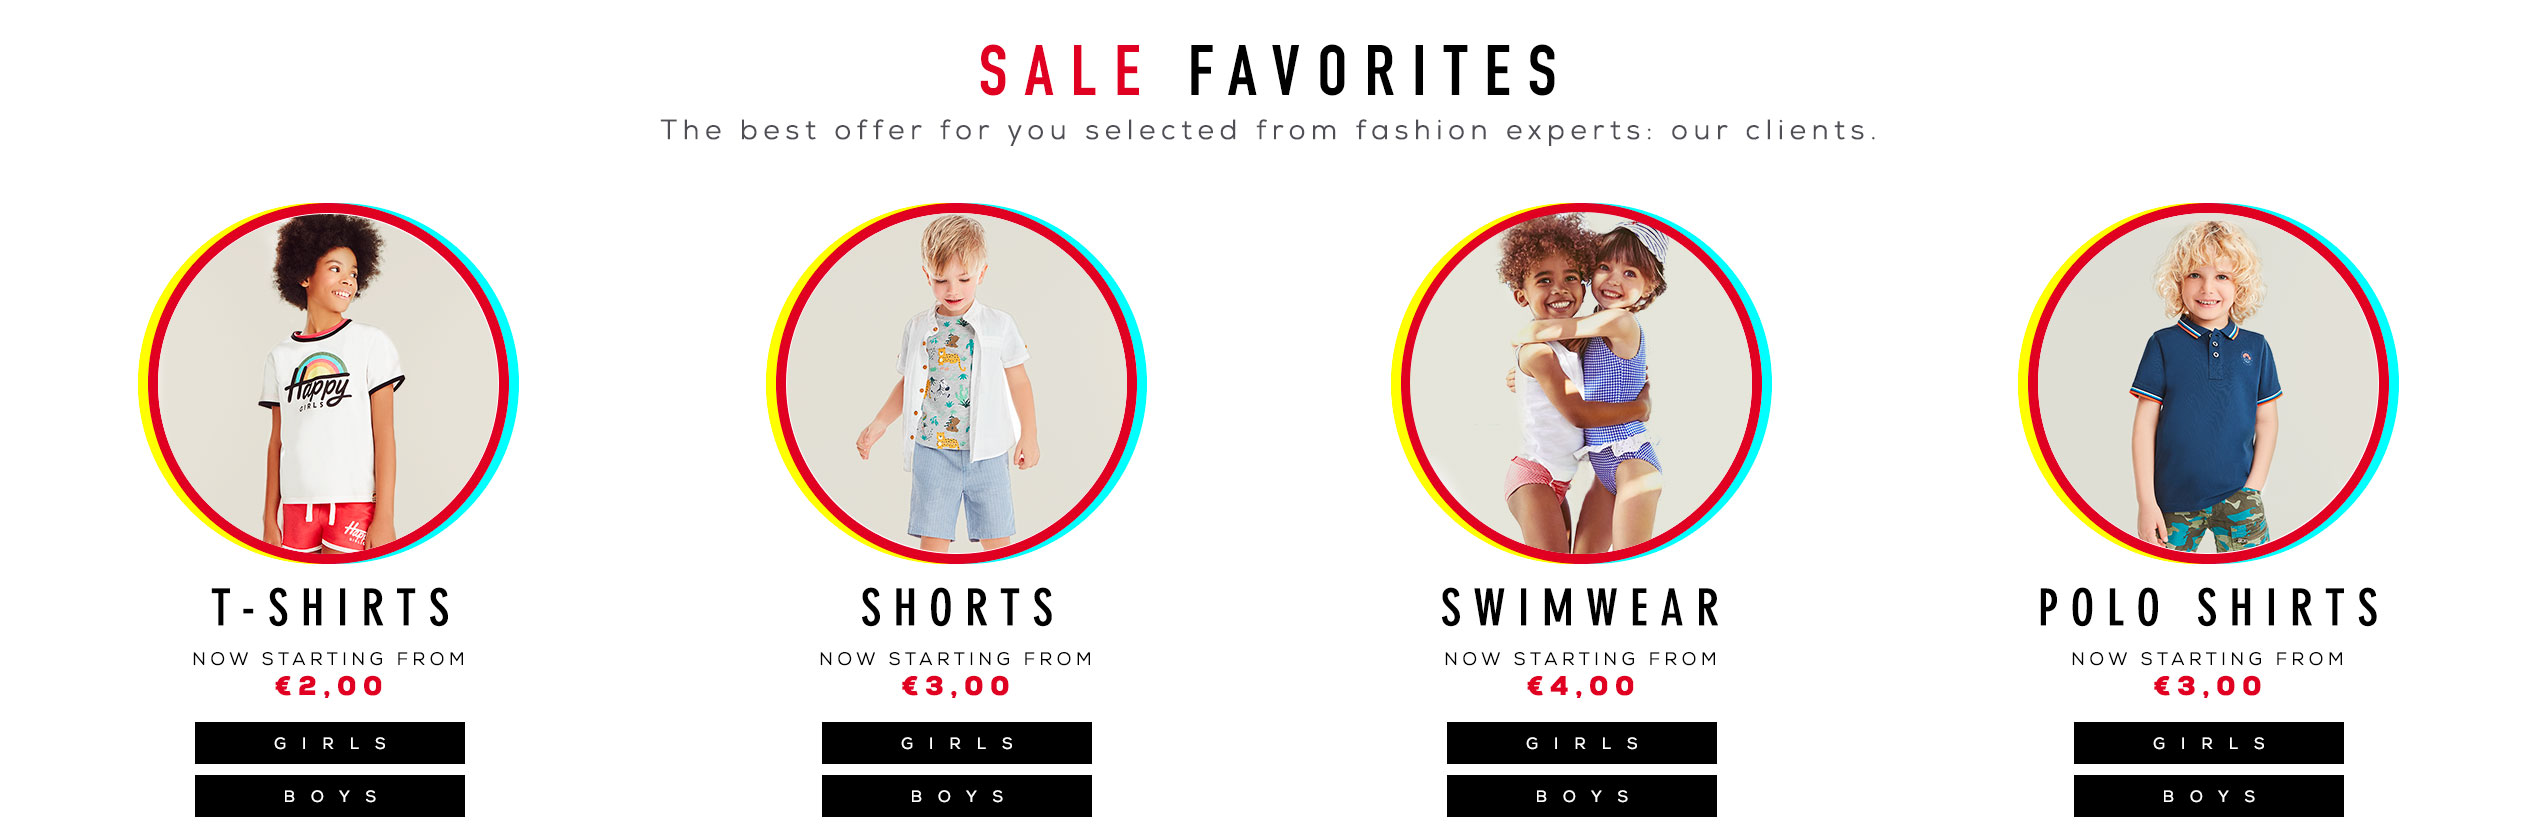 ed12ecead8 ONLINE CLOTHING: CASUAL, TRENDY STYLE FOR MEN, WOMEN AND KIDS